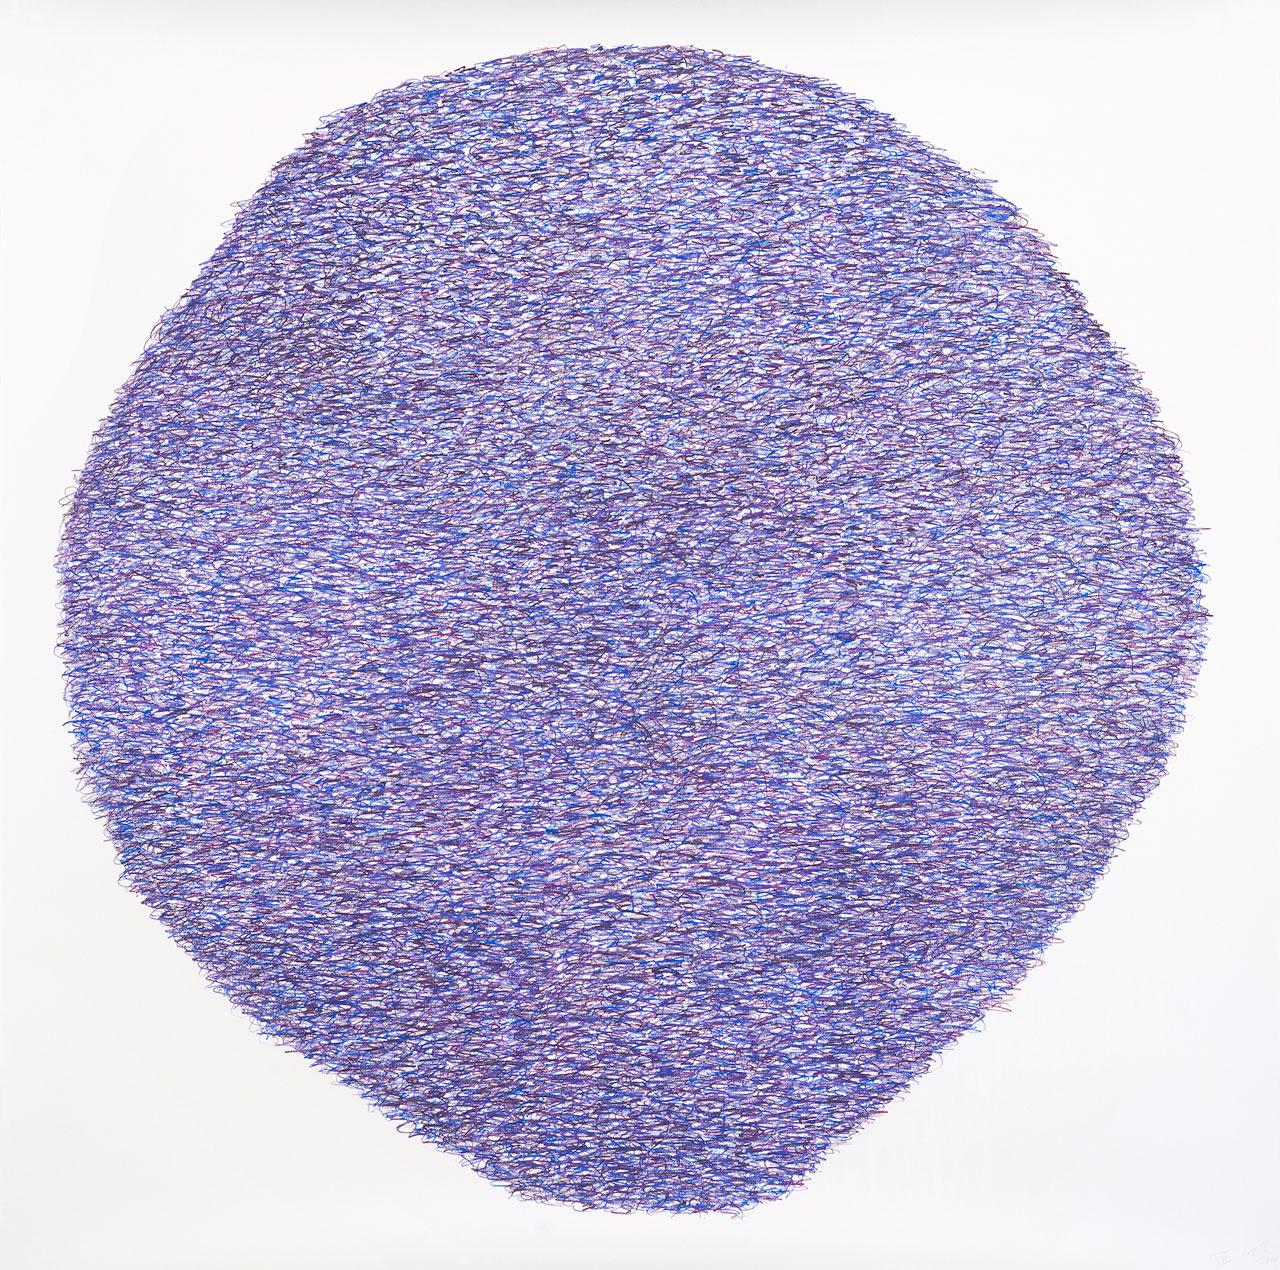 McArthur Binion, Under:Conscious: Drawing VII, 2014, colored pencil on paper, 133.4 × 133.4 cm. Courtesy: the artists and Richard Gray Gallery, Chicago.